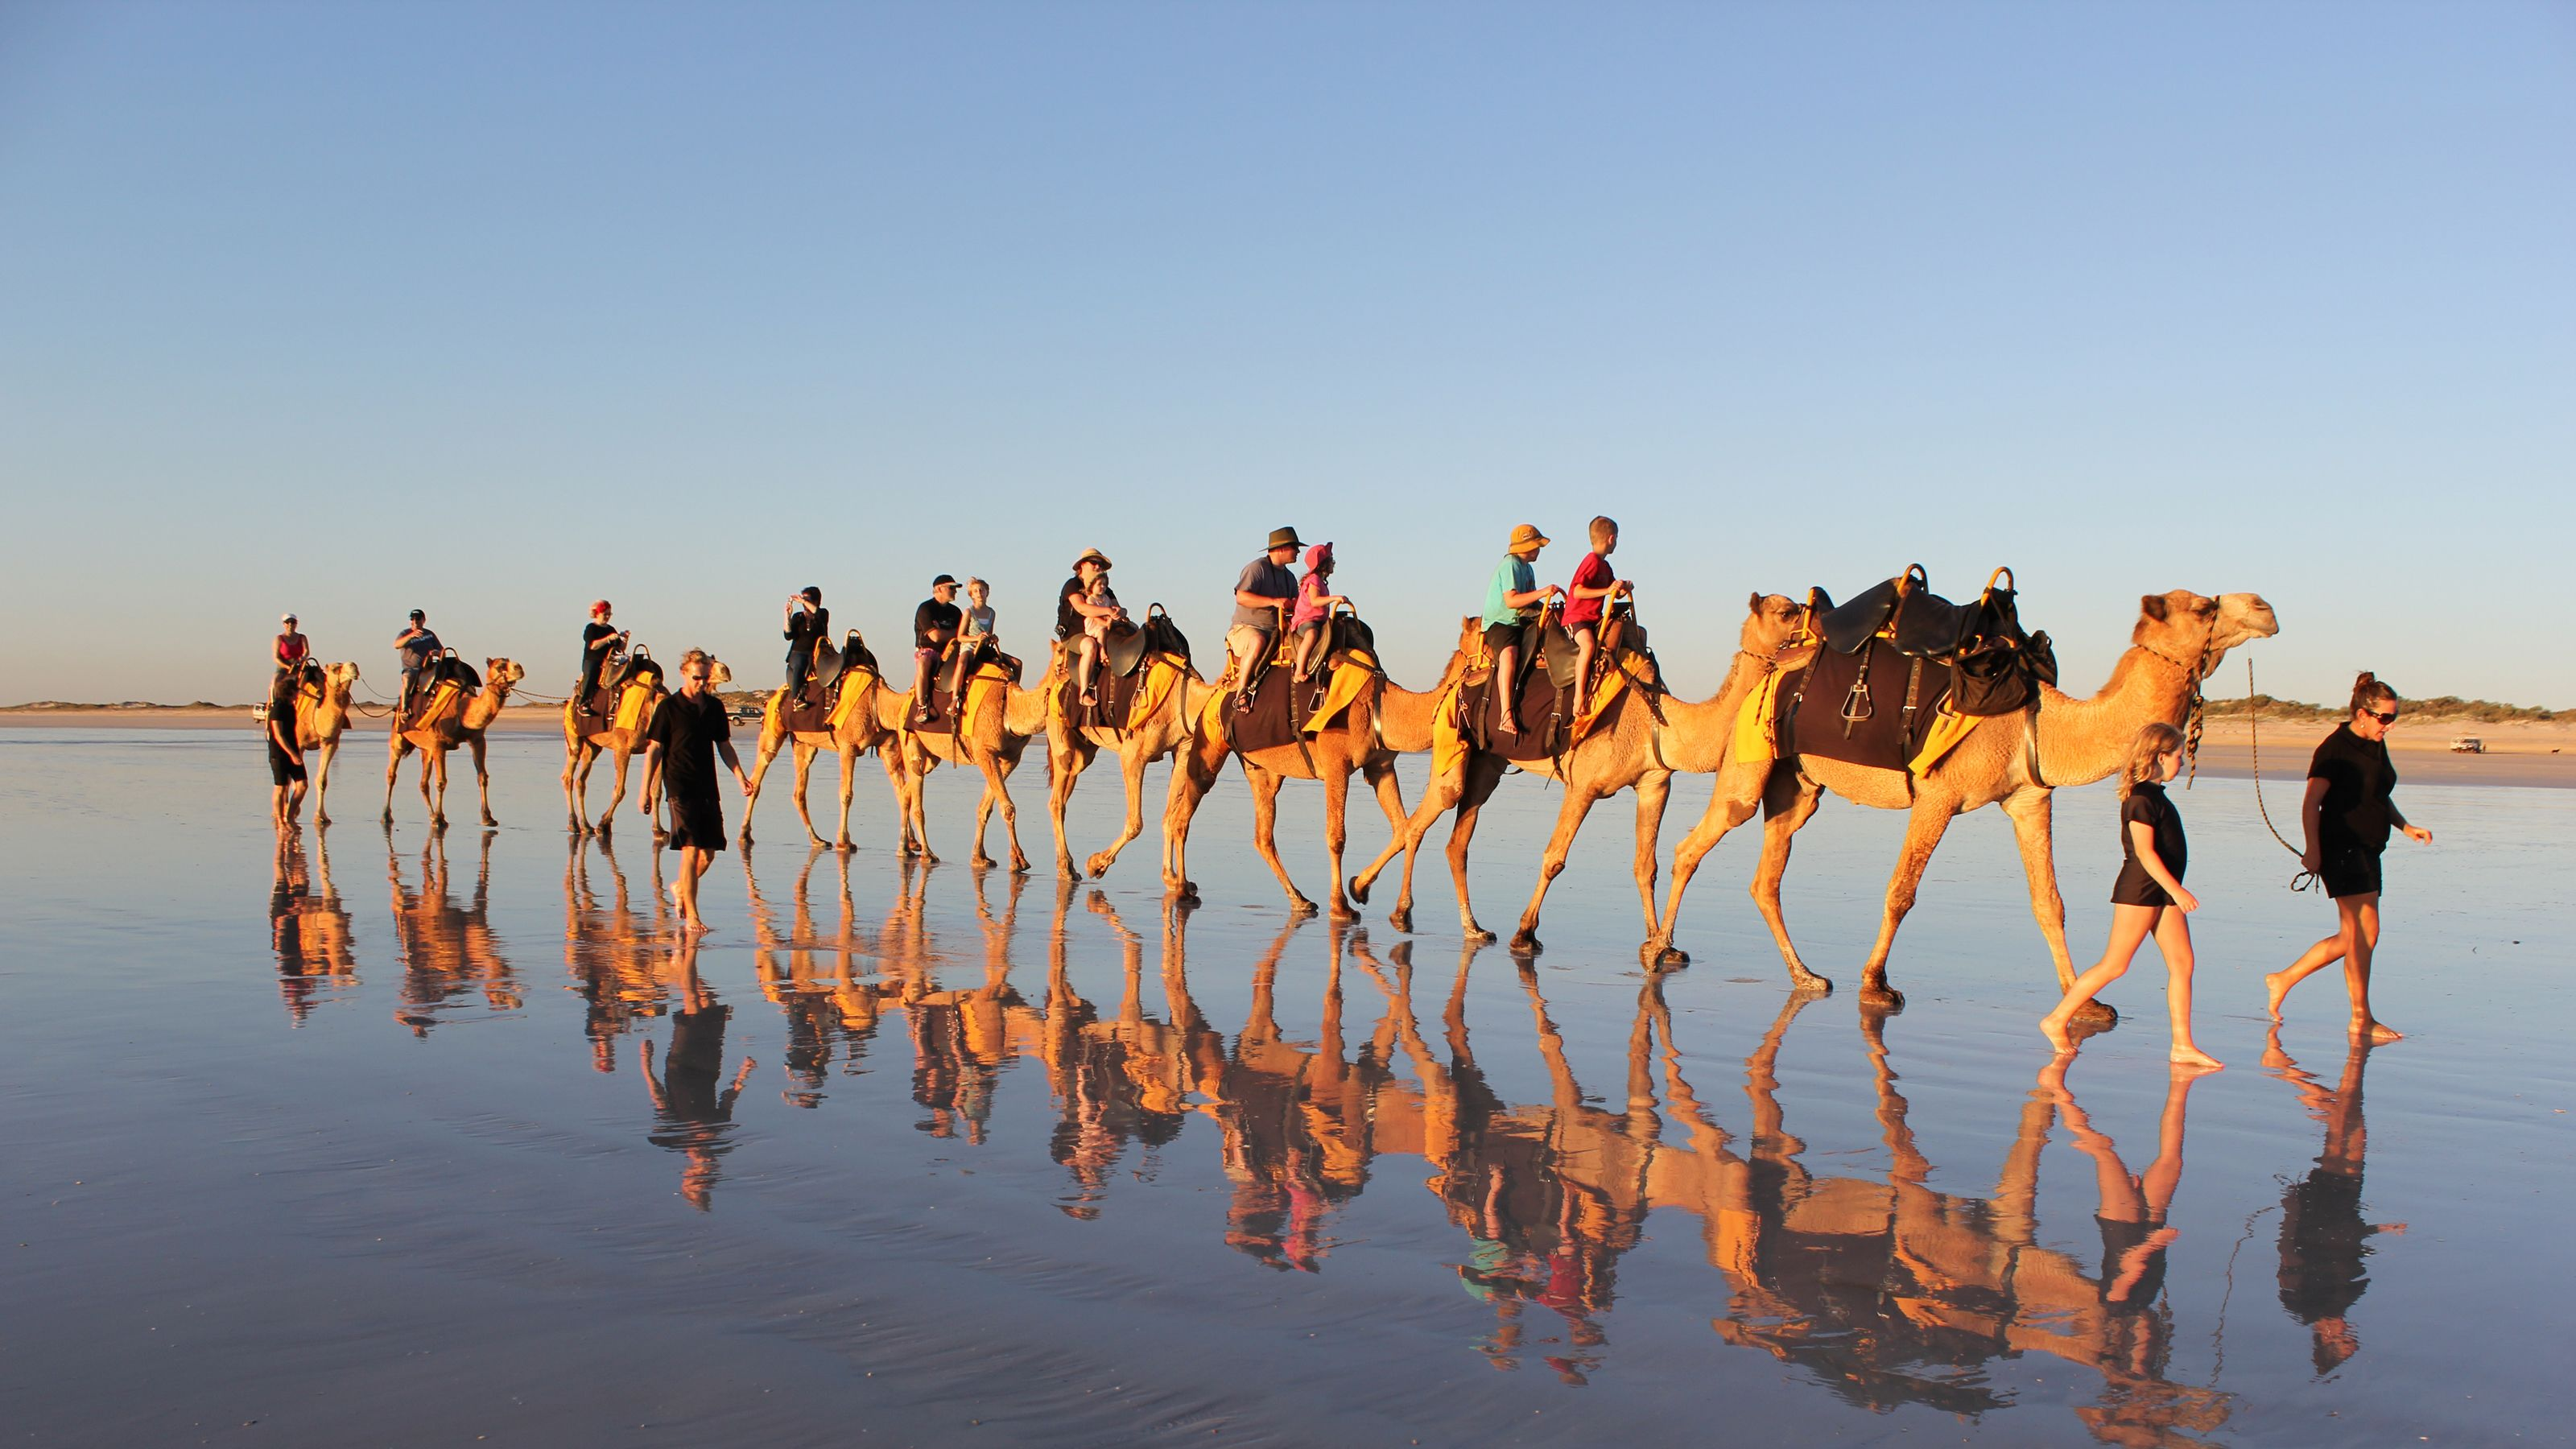 Row of camels with riders in shallow water in Agadir